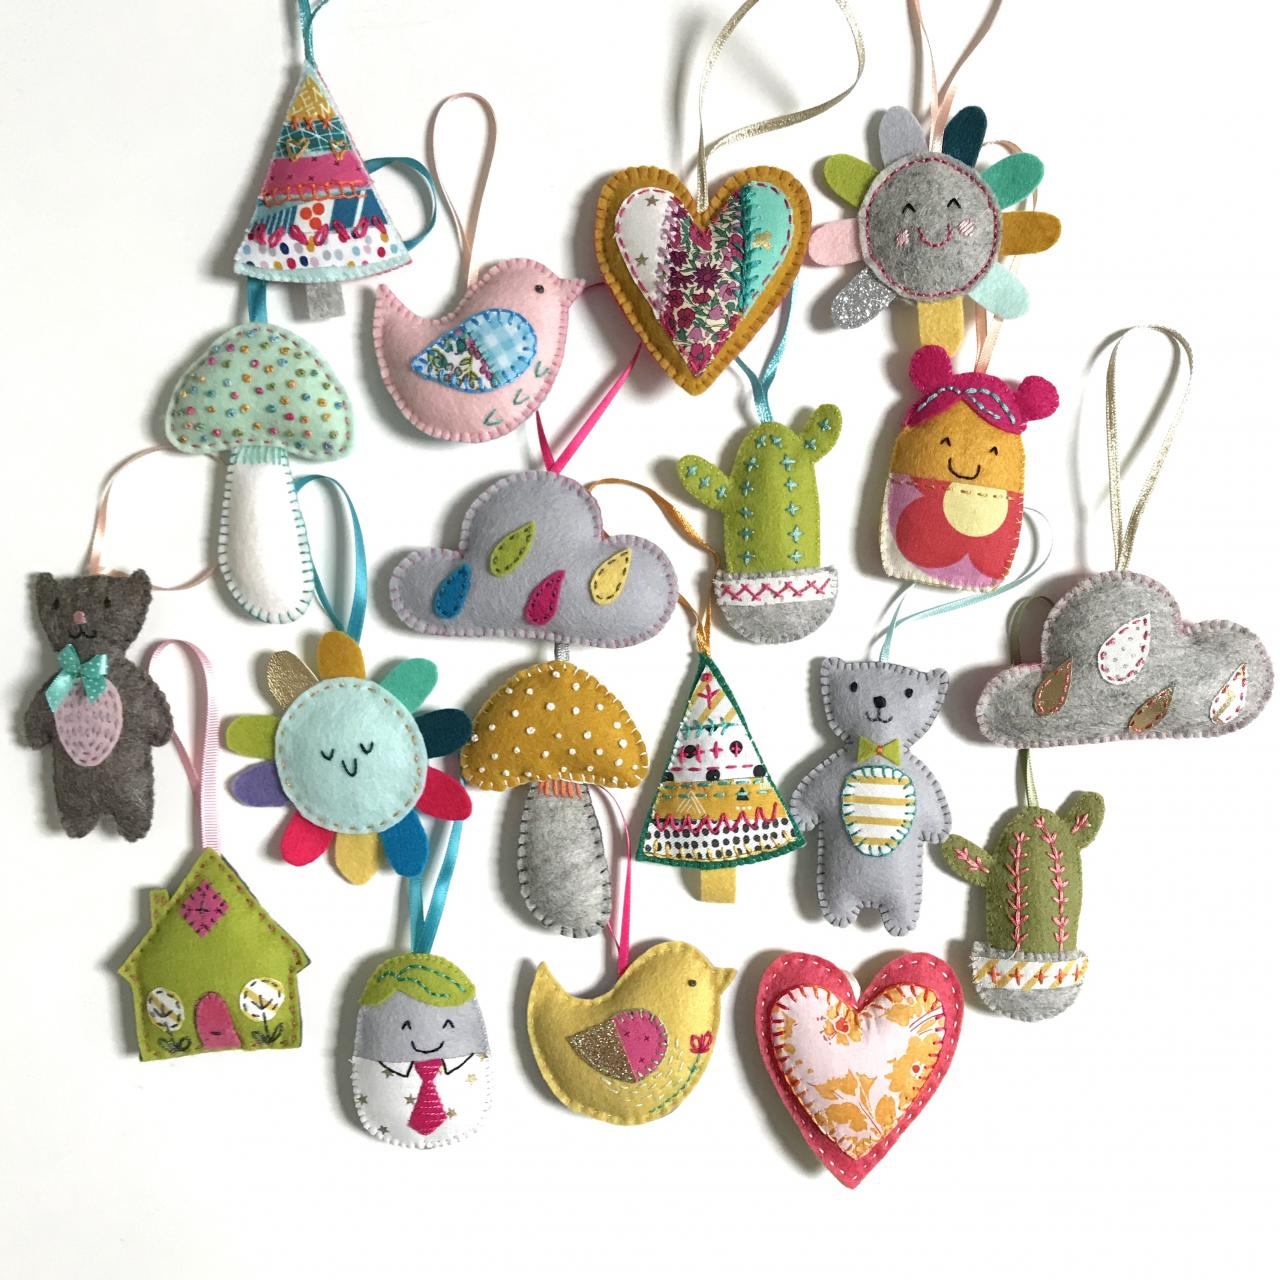 Hand stitched Lavender Bags by Shirley Rainbow